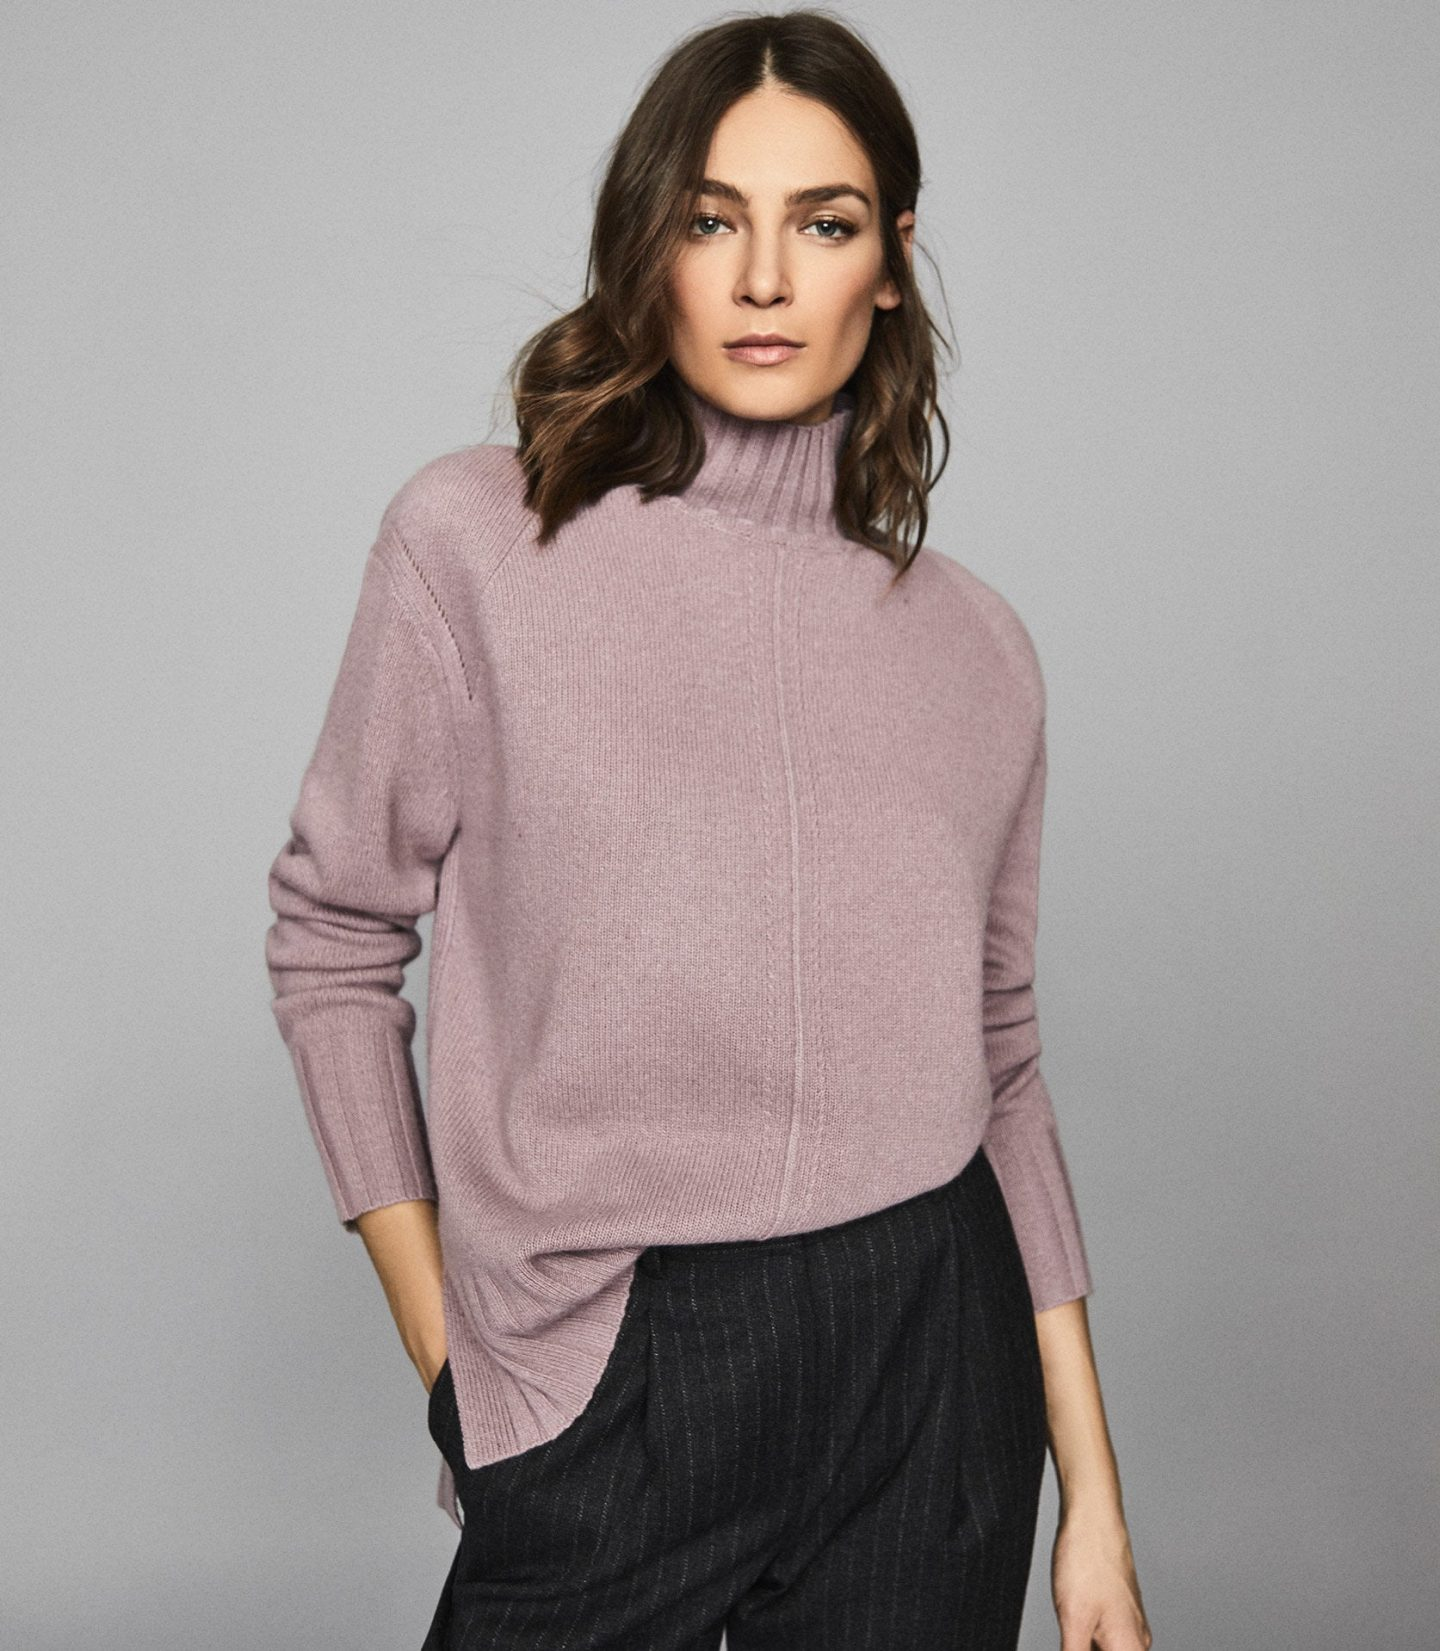 woman wearing mauve turtleneck from reiss knitwear collection